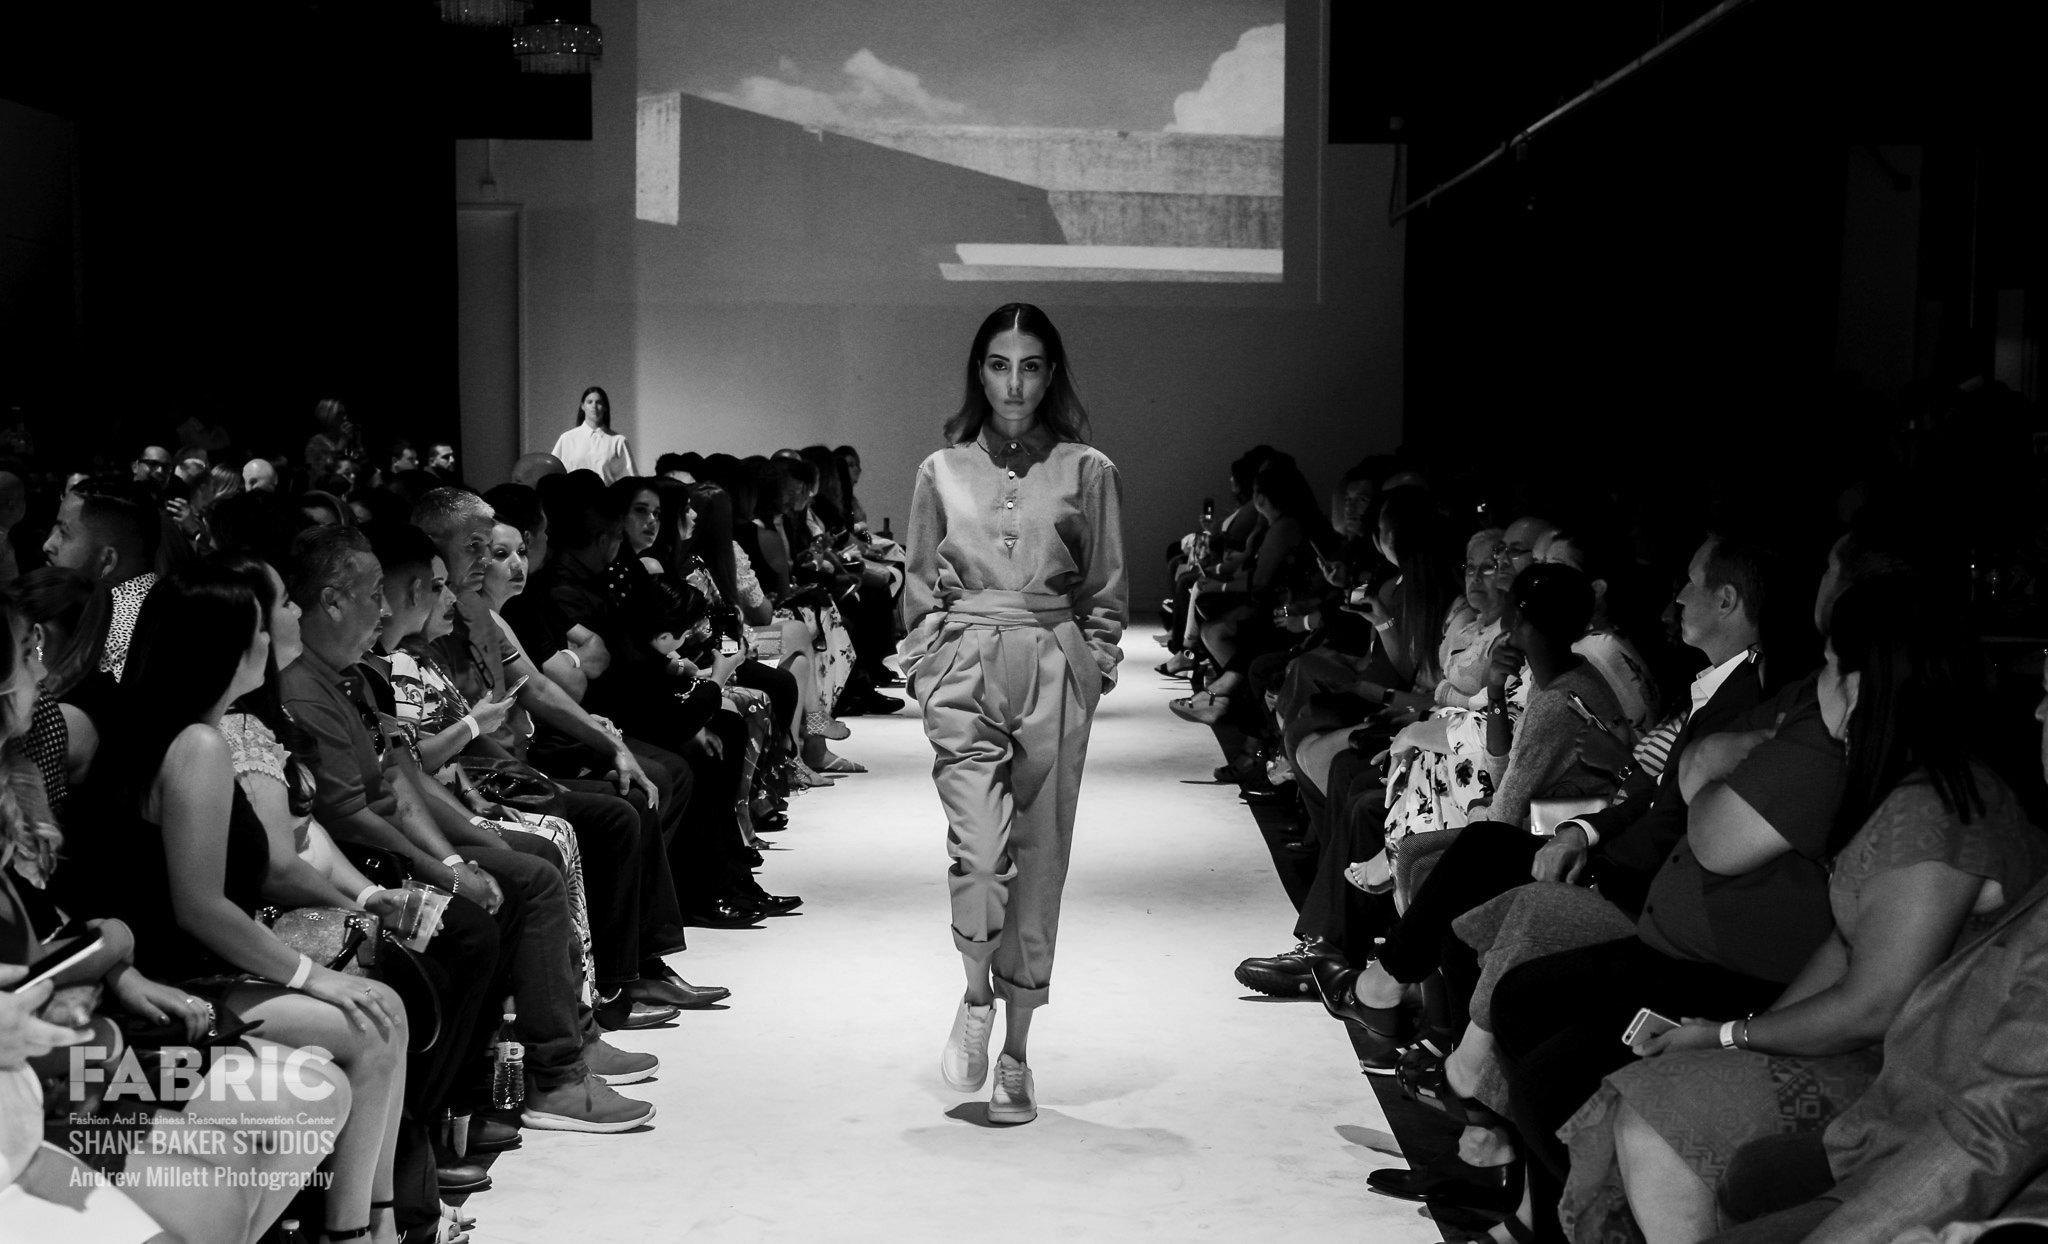 Runway and events